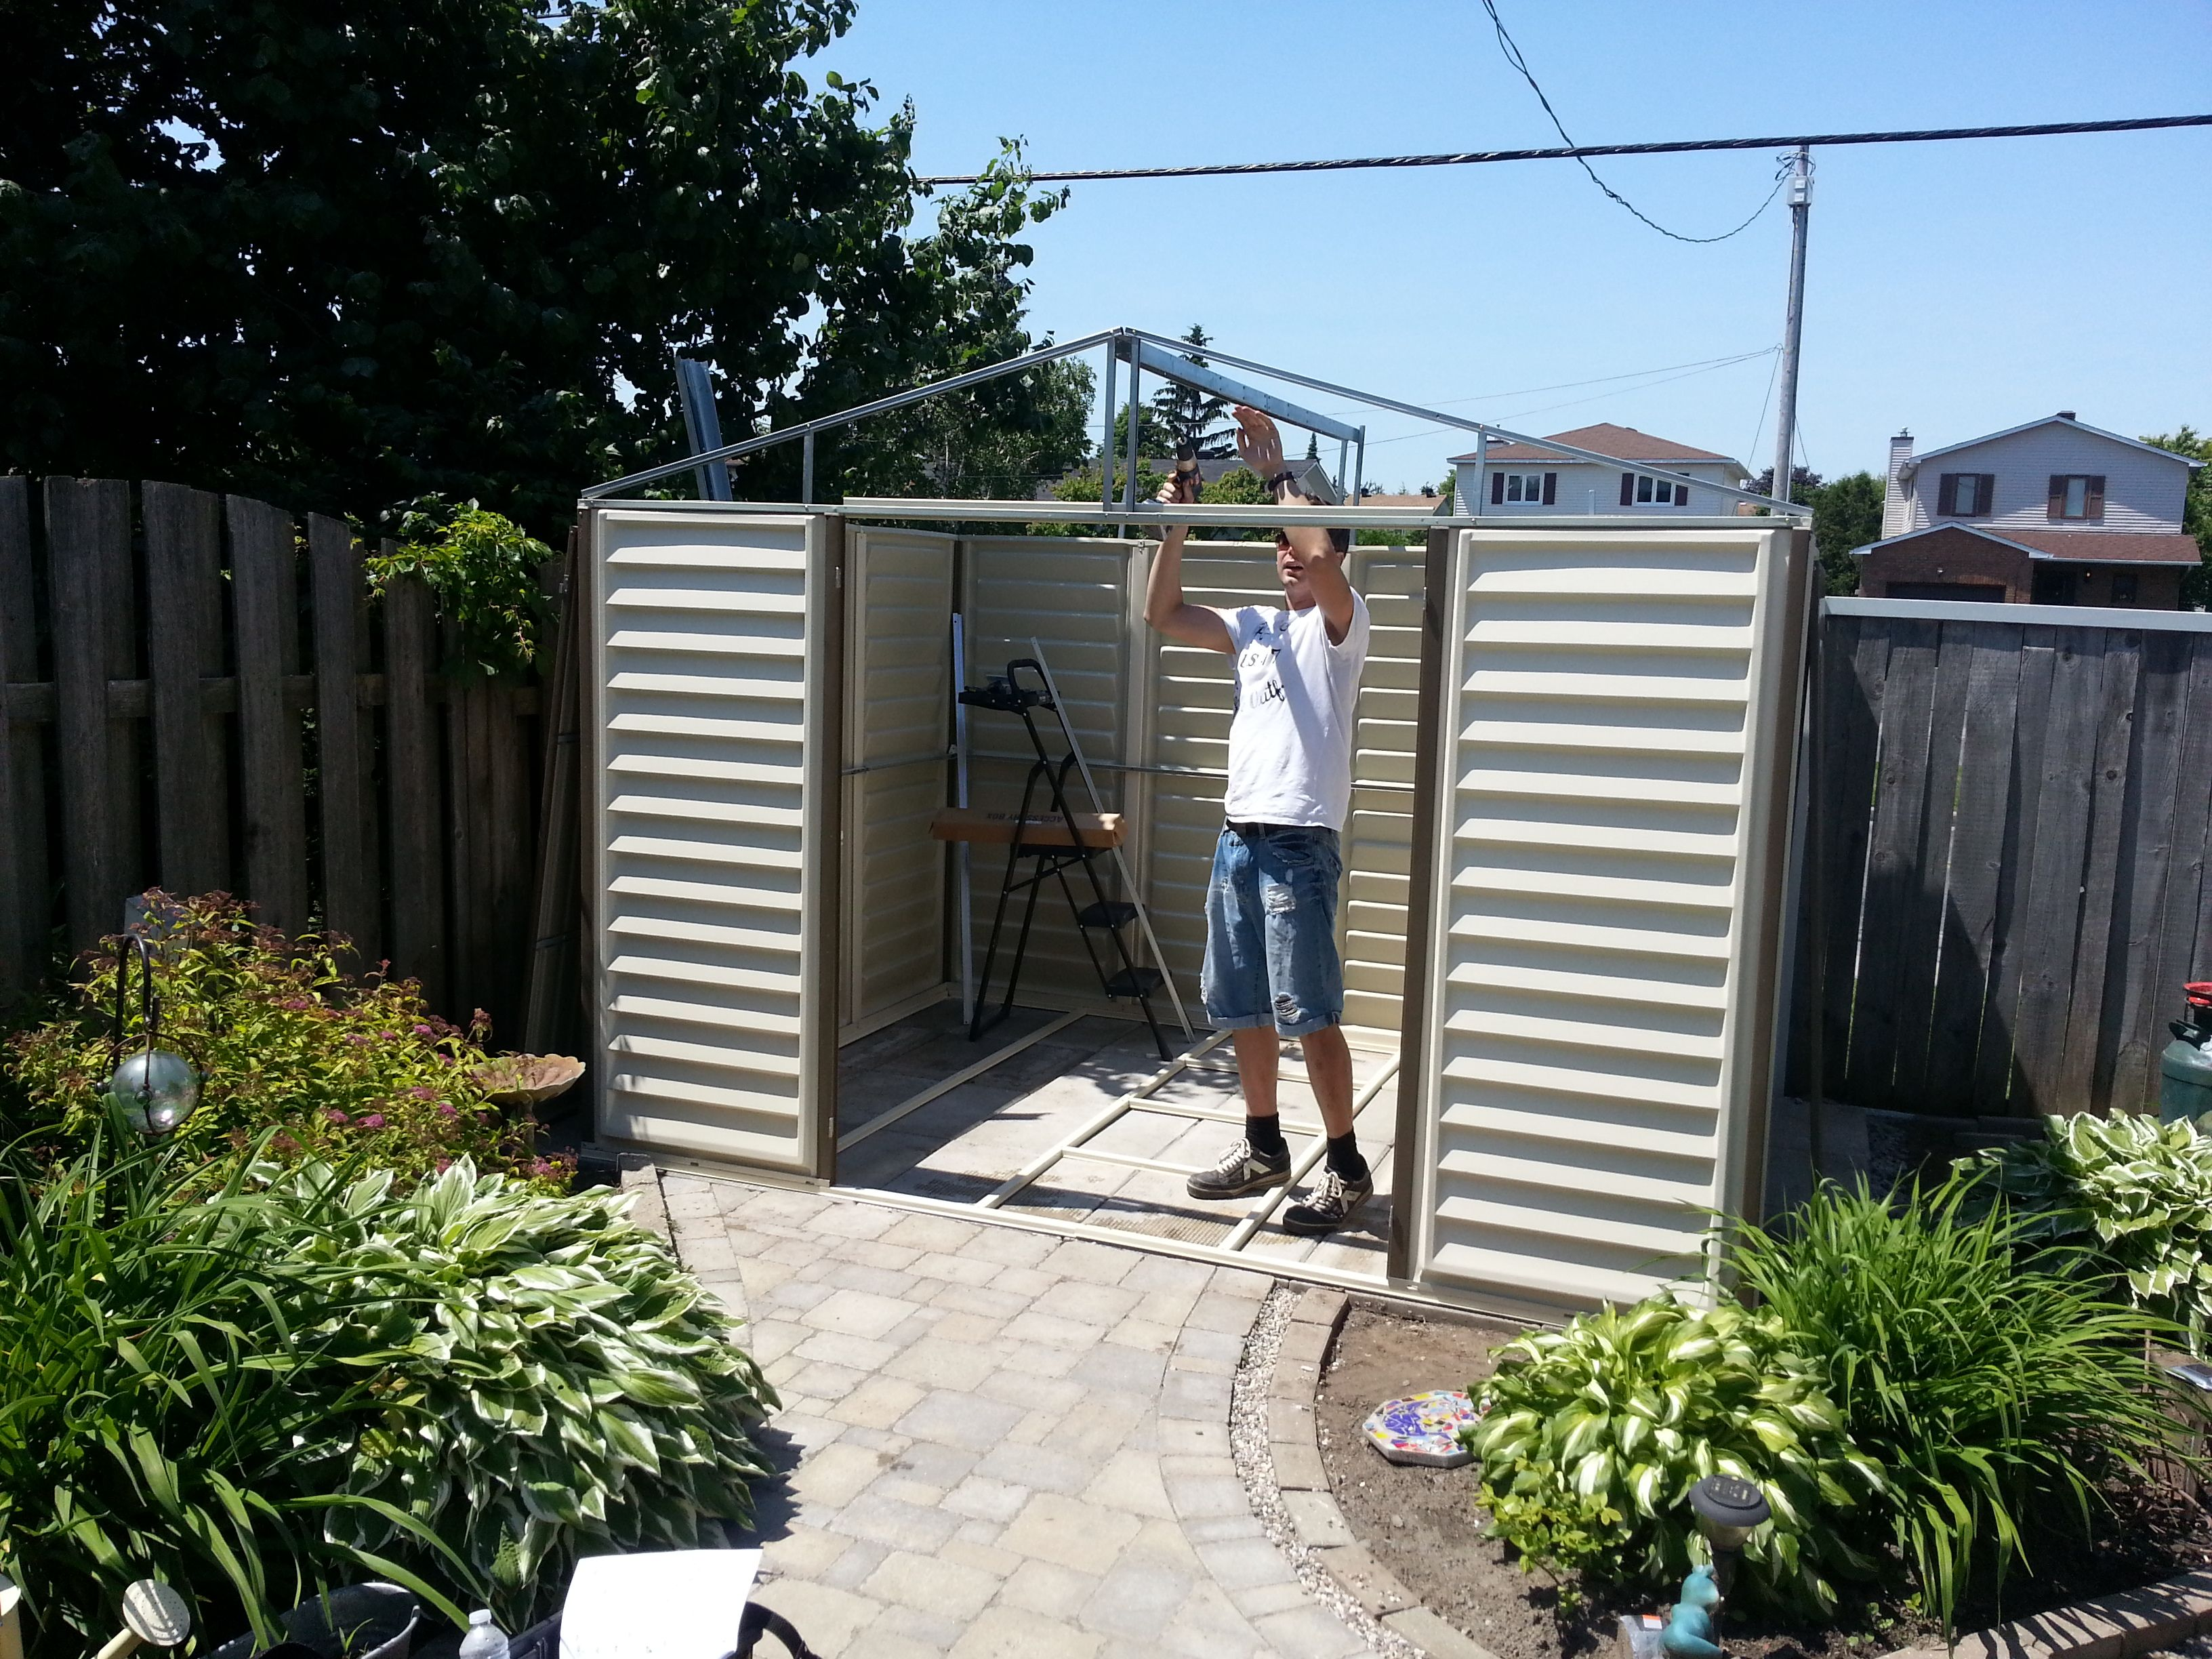 outdoor green in reinforced duty clad storage range heavy she just colours heritage metal well the as and plastic a garden duramax existing shed slate pent buildings upvc grey new sheds roof of arrived have to added apex steel light